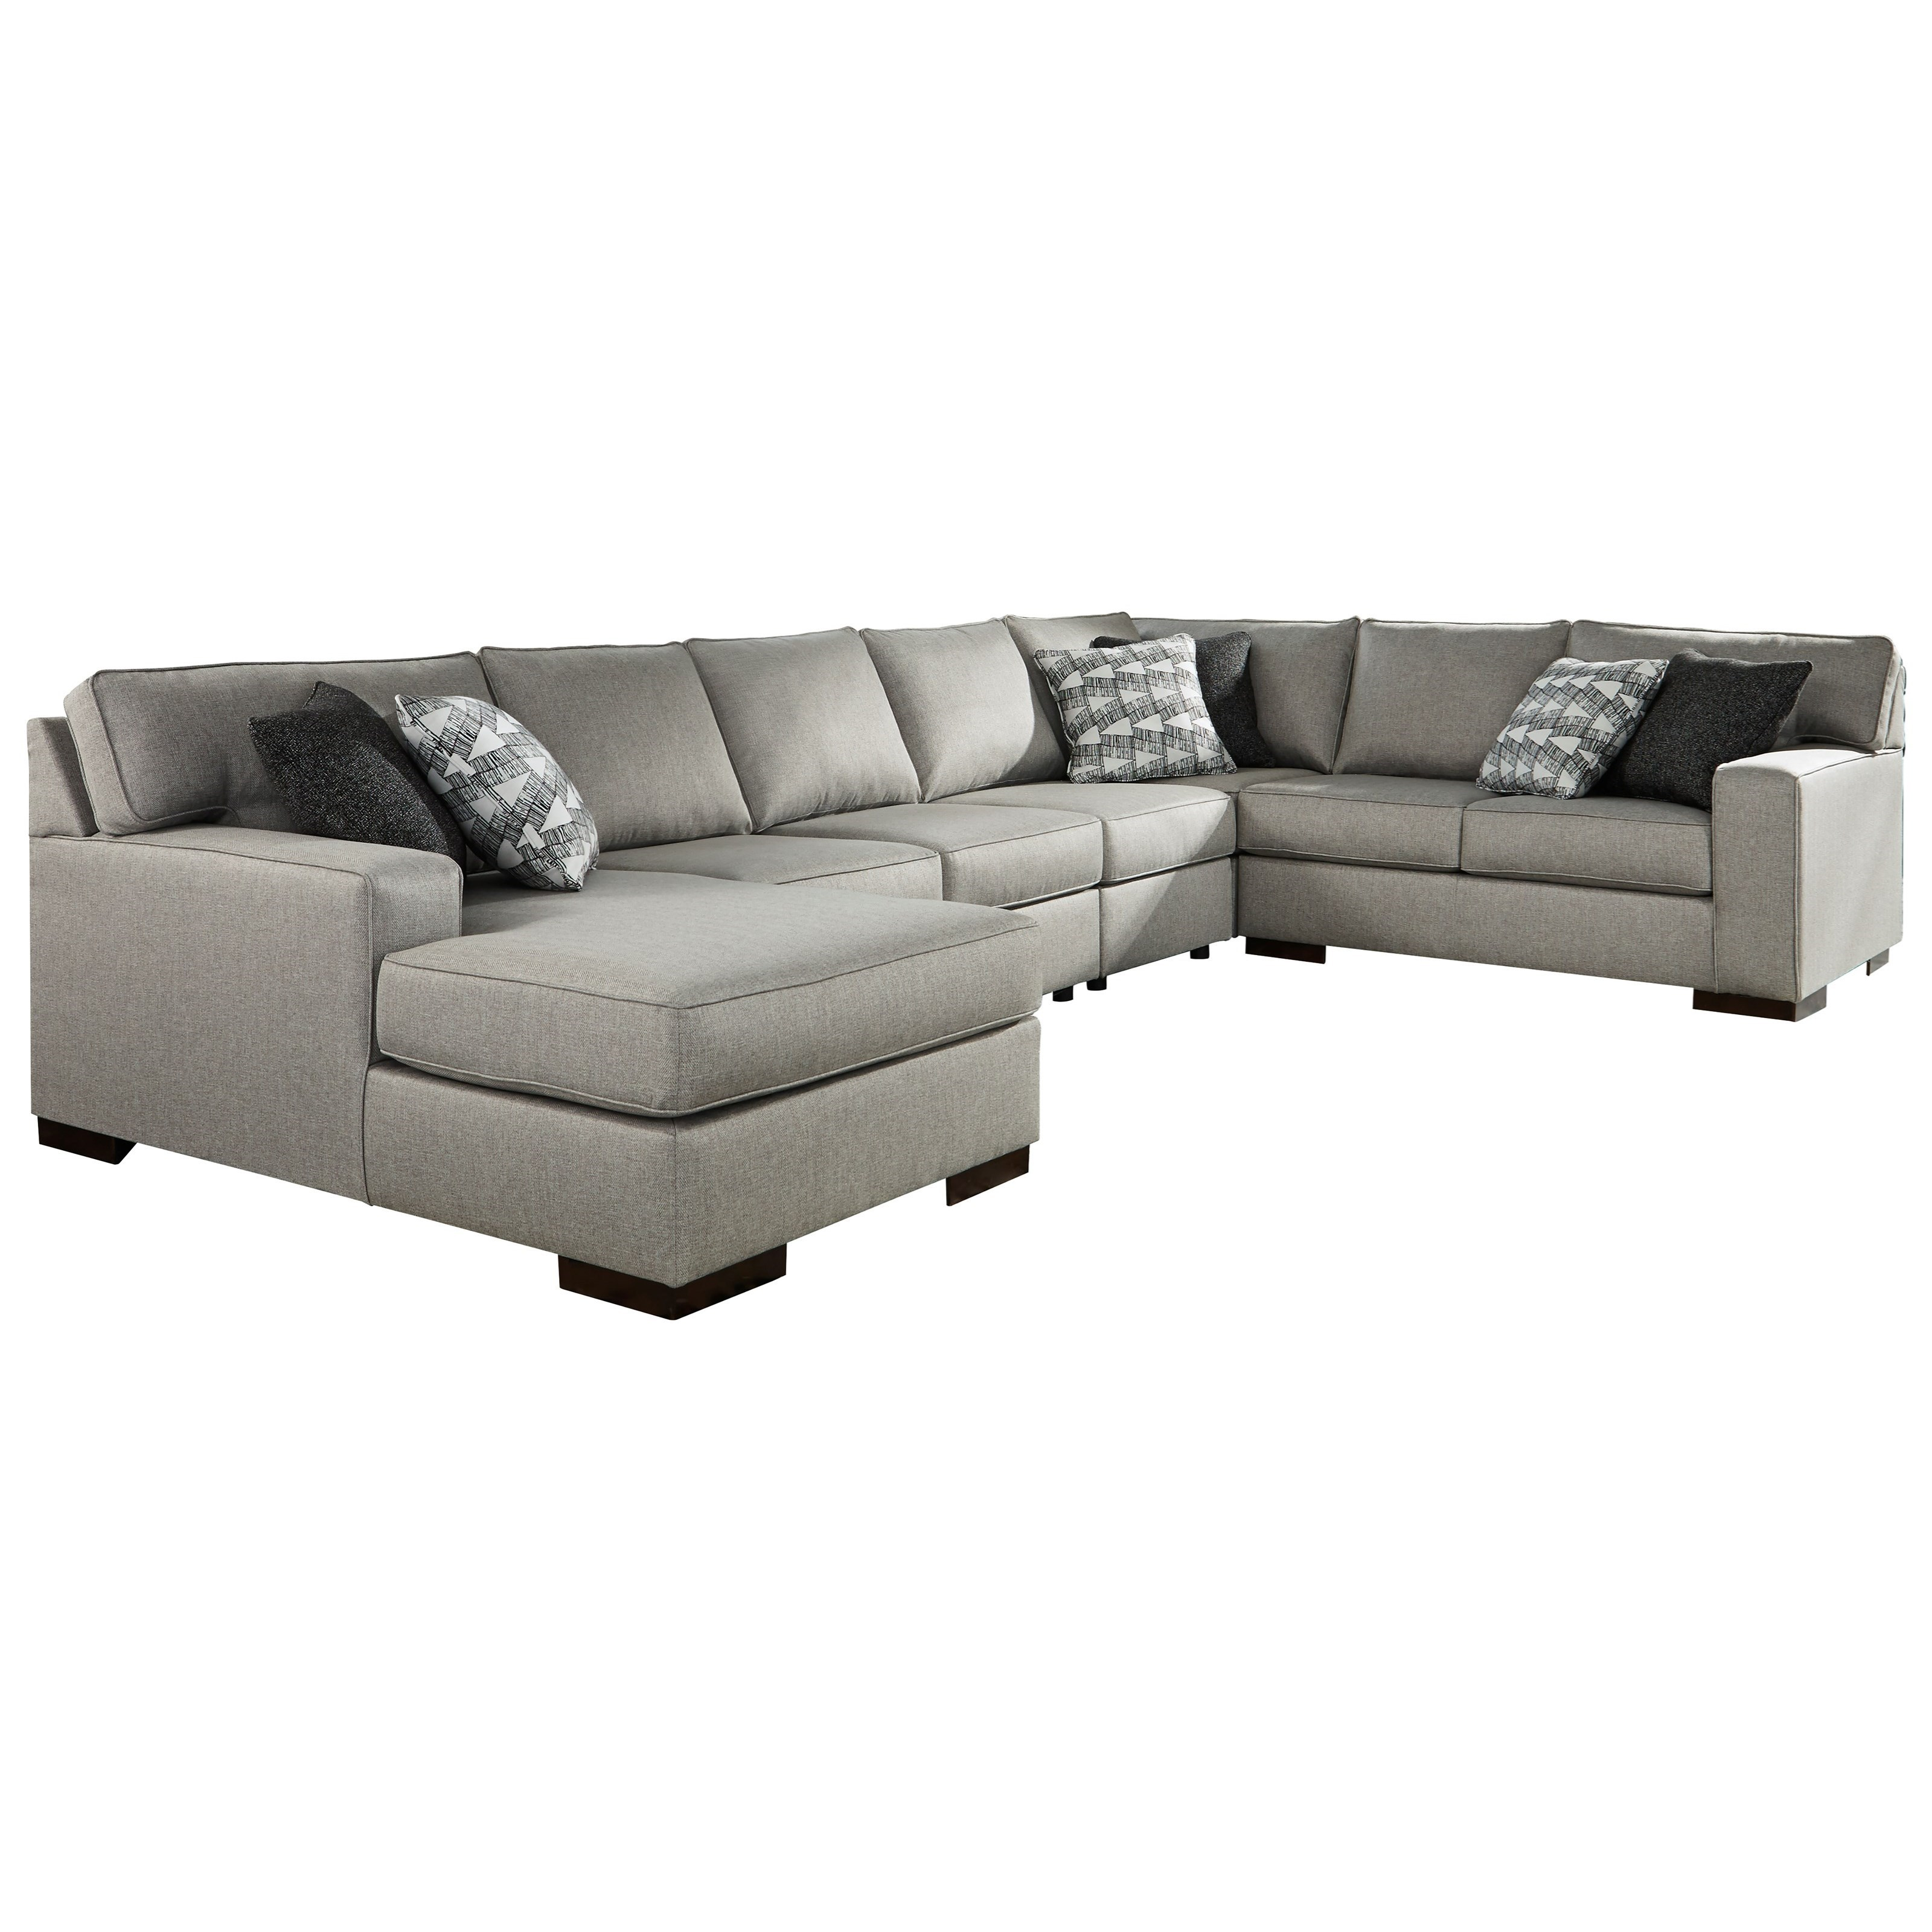 Marsing Nuvella 5-Piece Sectional with Chaise & Sleeper by Benchcraft at HomeWorld Furniture